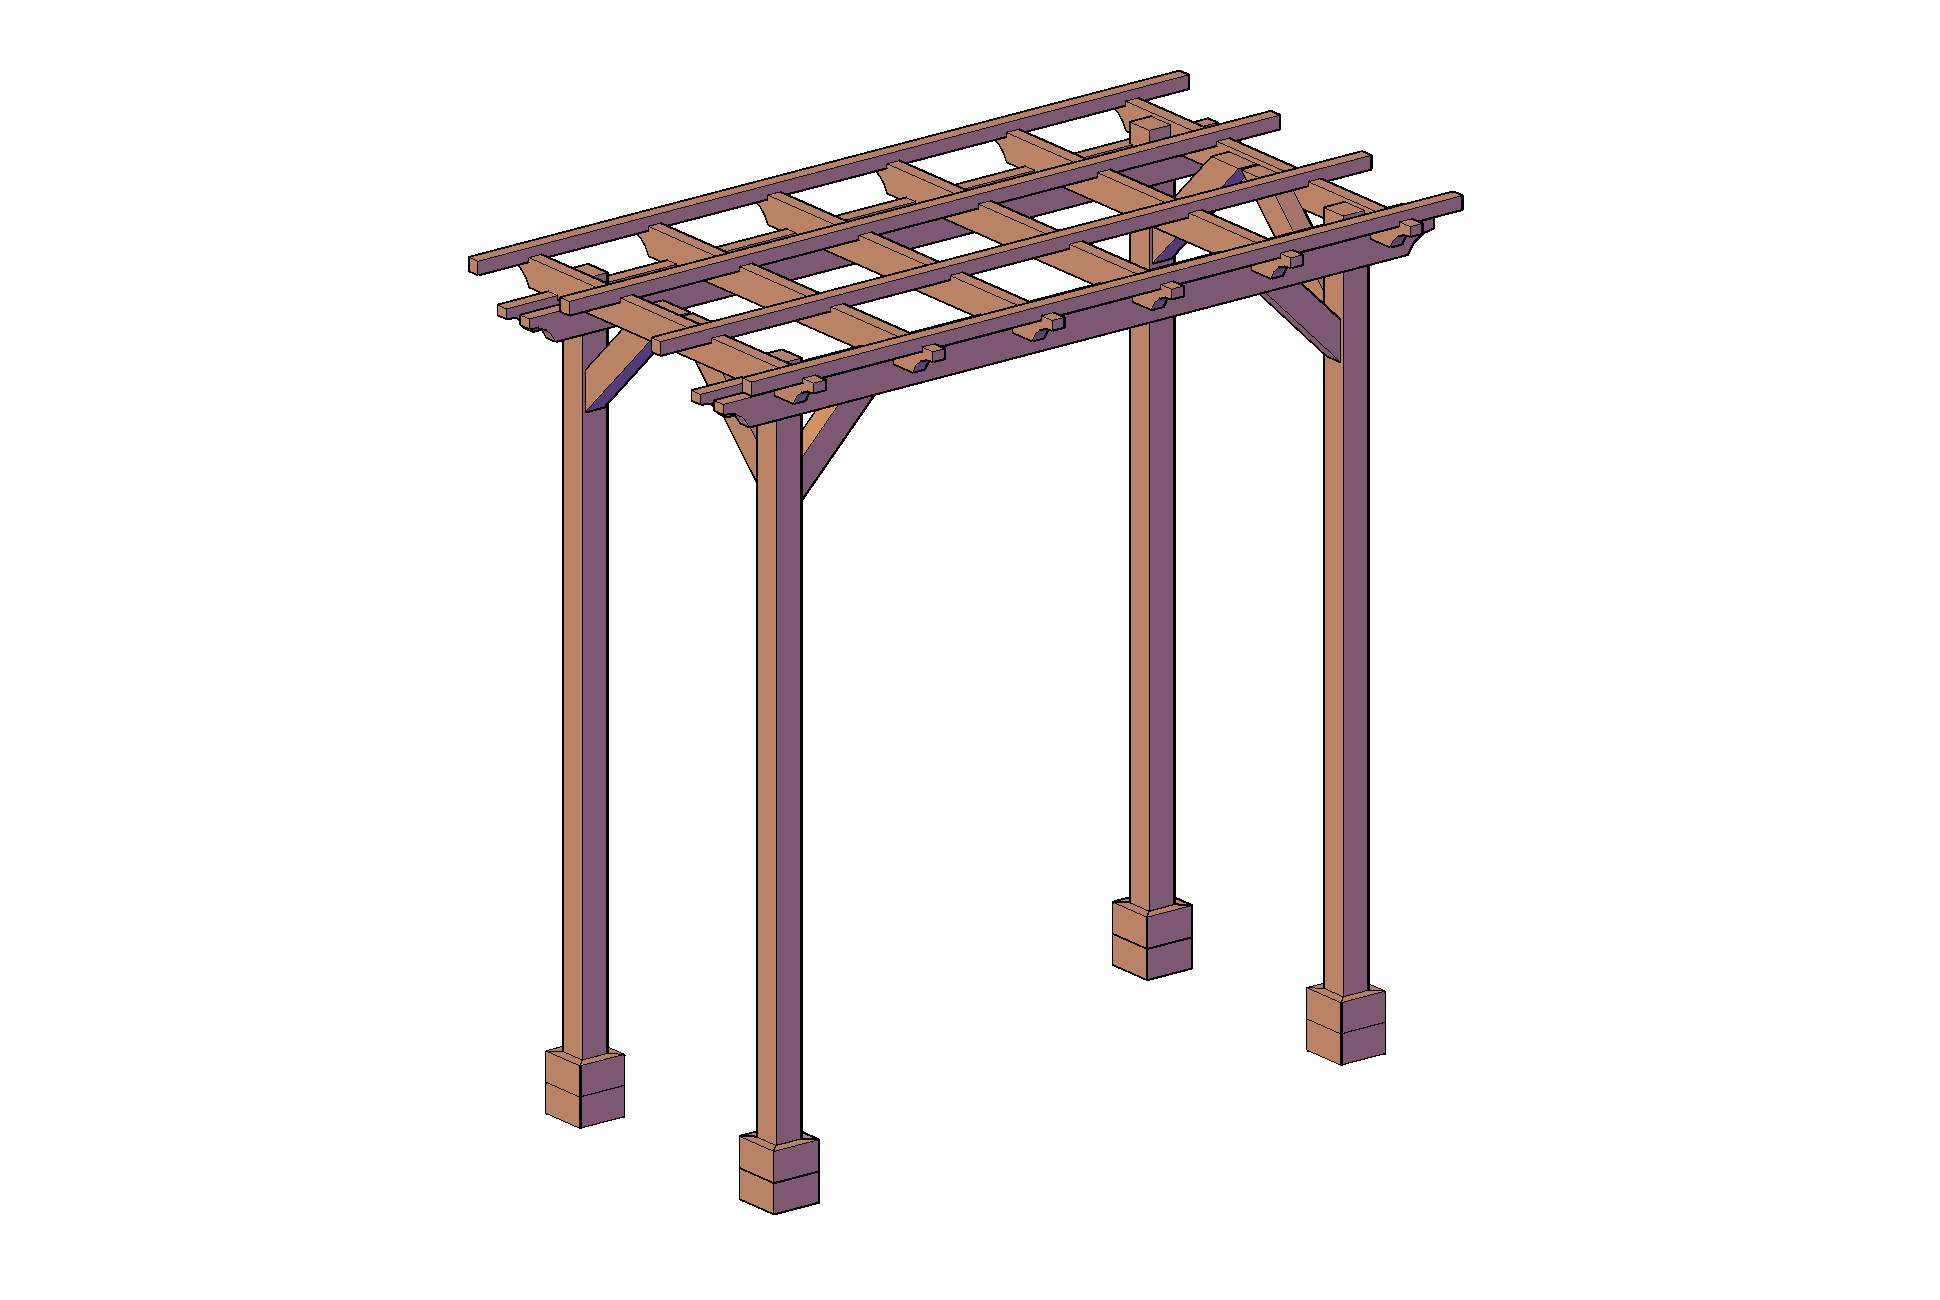 Small_Garden_Pergola_Kit_d_04.png